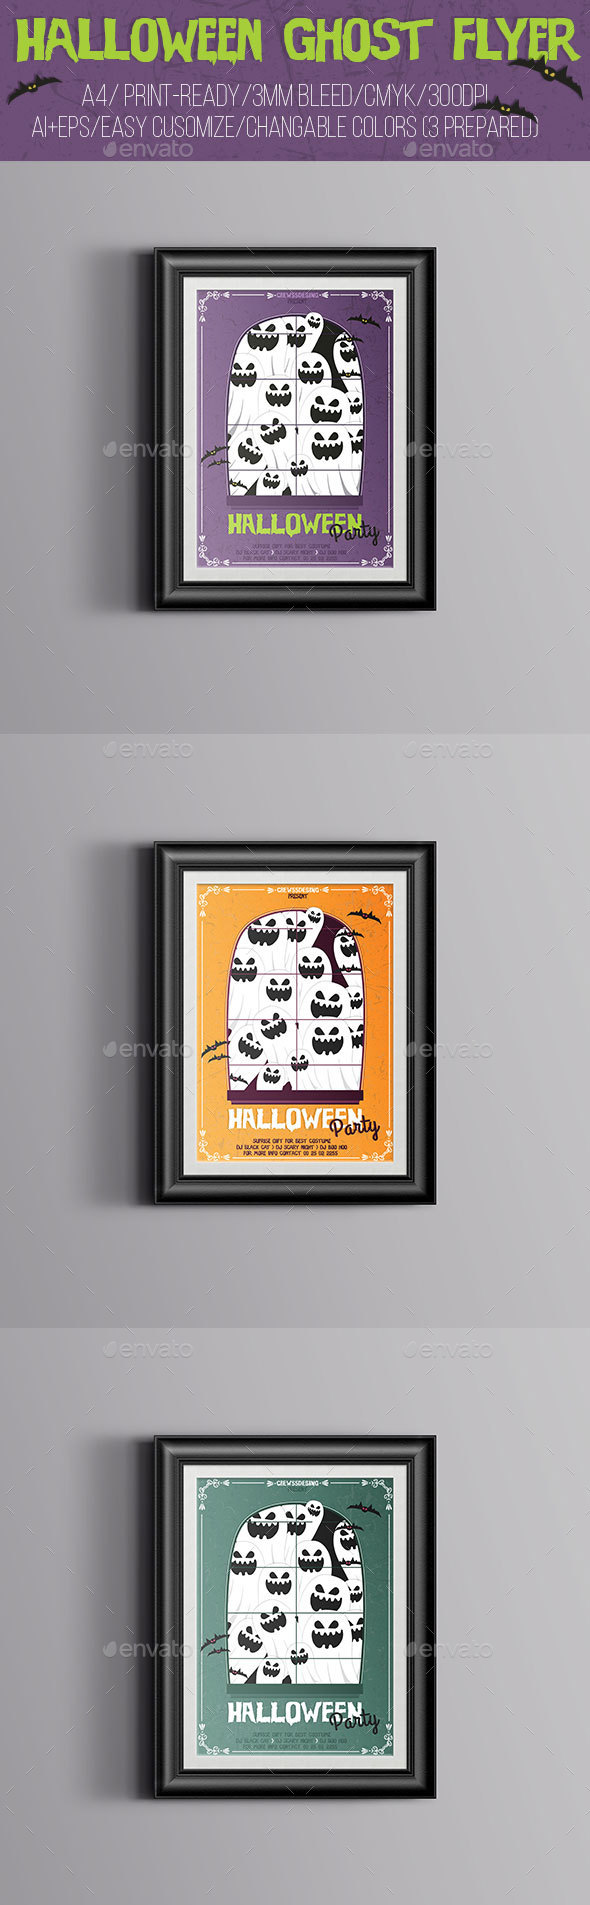 Halloween Ghost Flyer - Flyers Print Templates